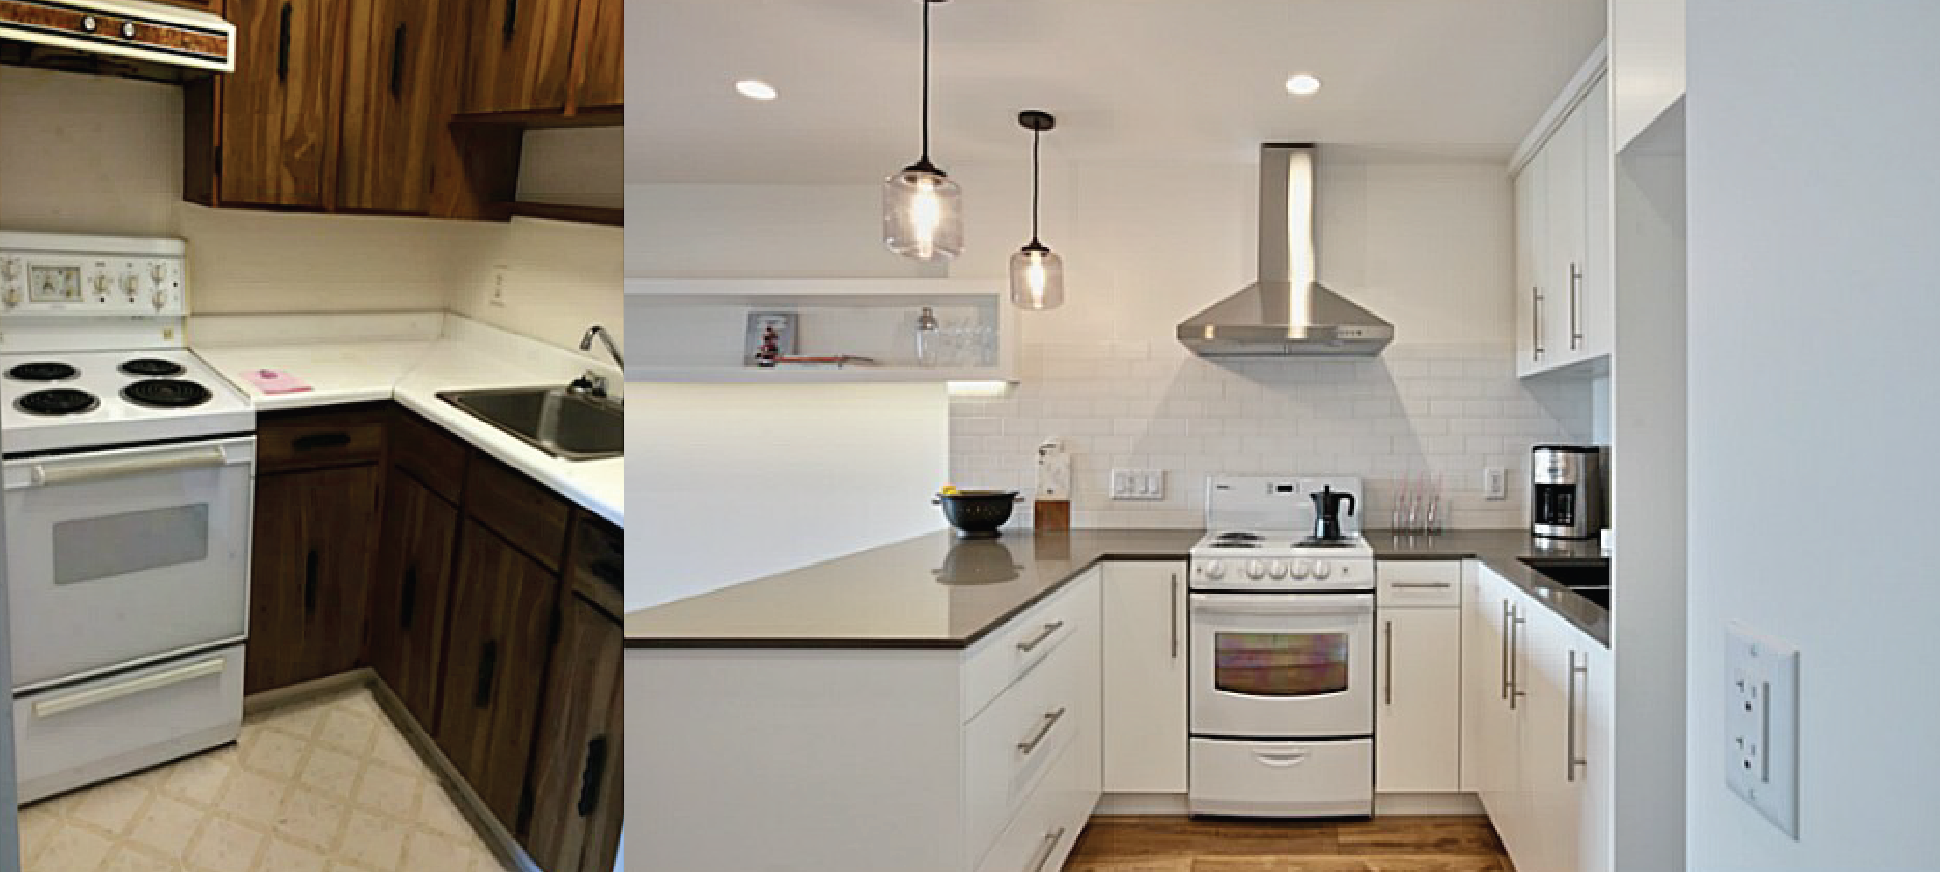 kitchen remodel floor or cabinets first small kitchen remodel before and after for stunning and 21975